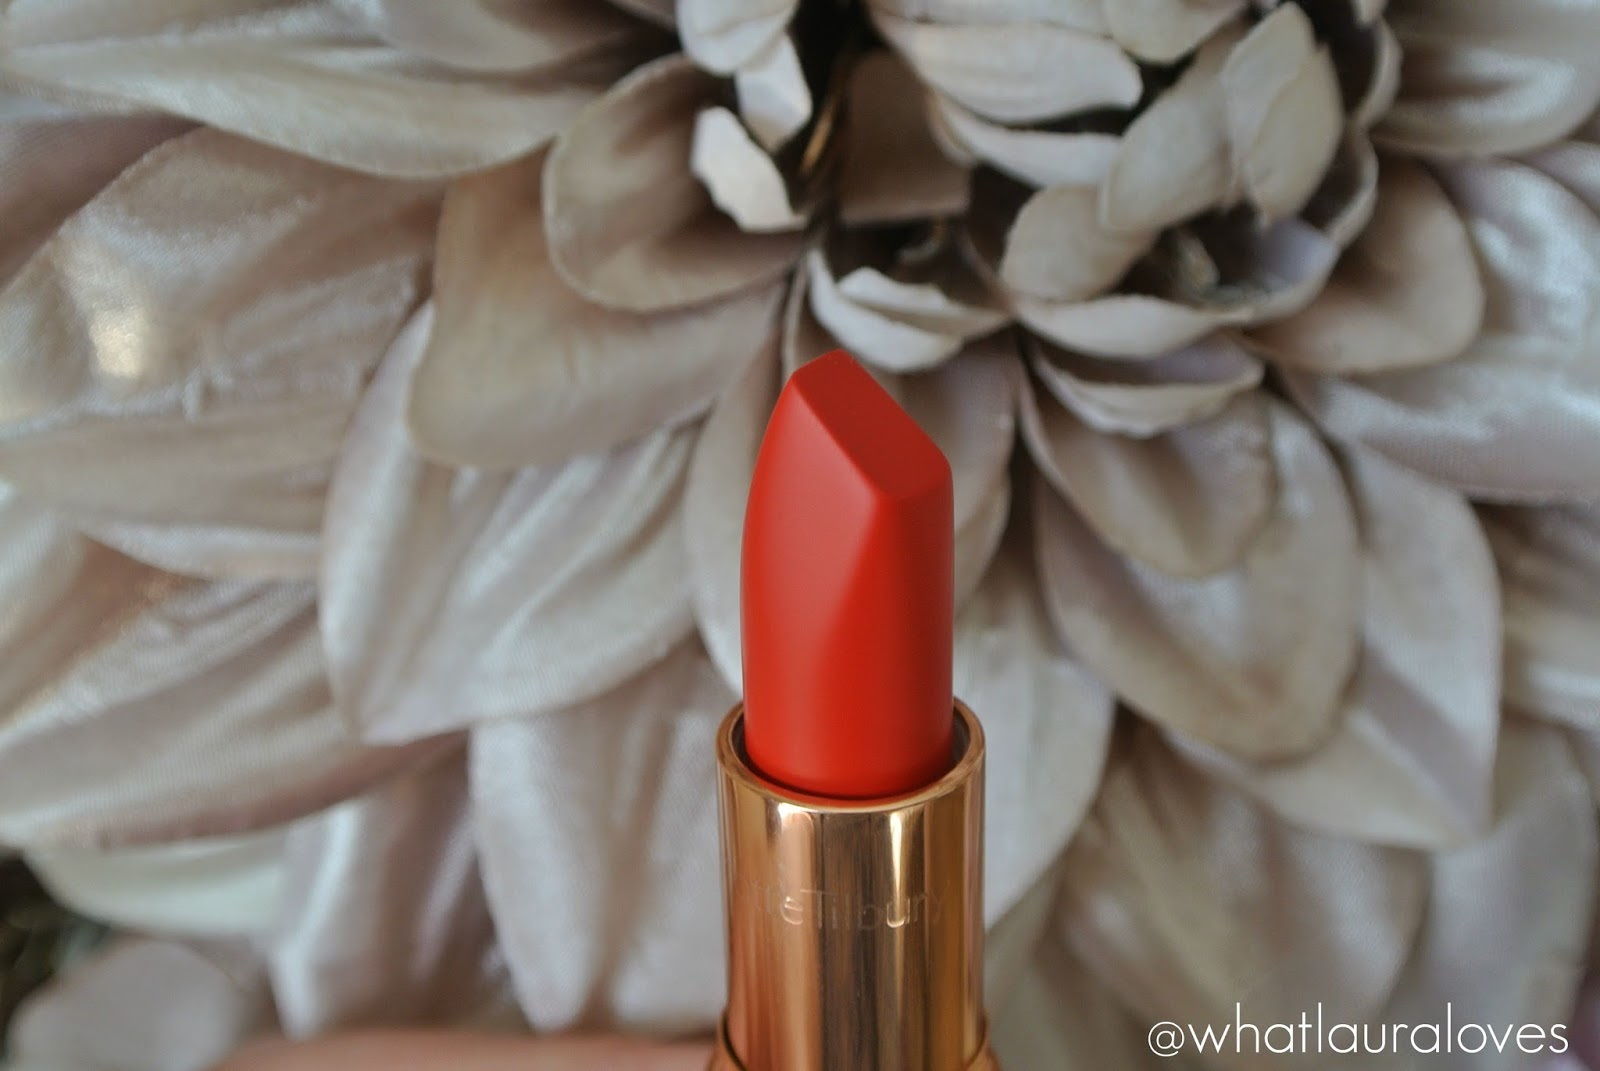 Charlotte Tilbury x Norman Parkinson Matte Revolution Lipstick in 1975 Red Review